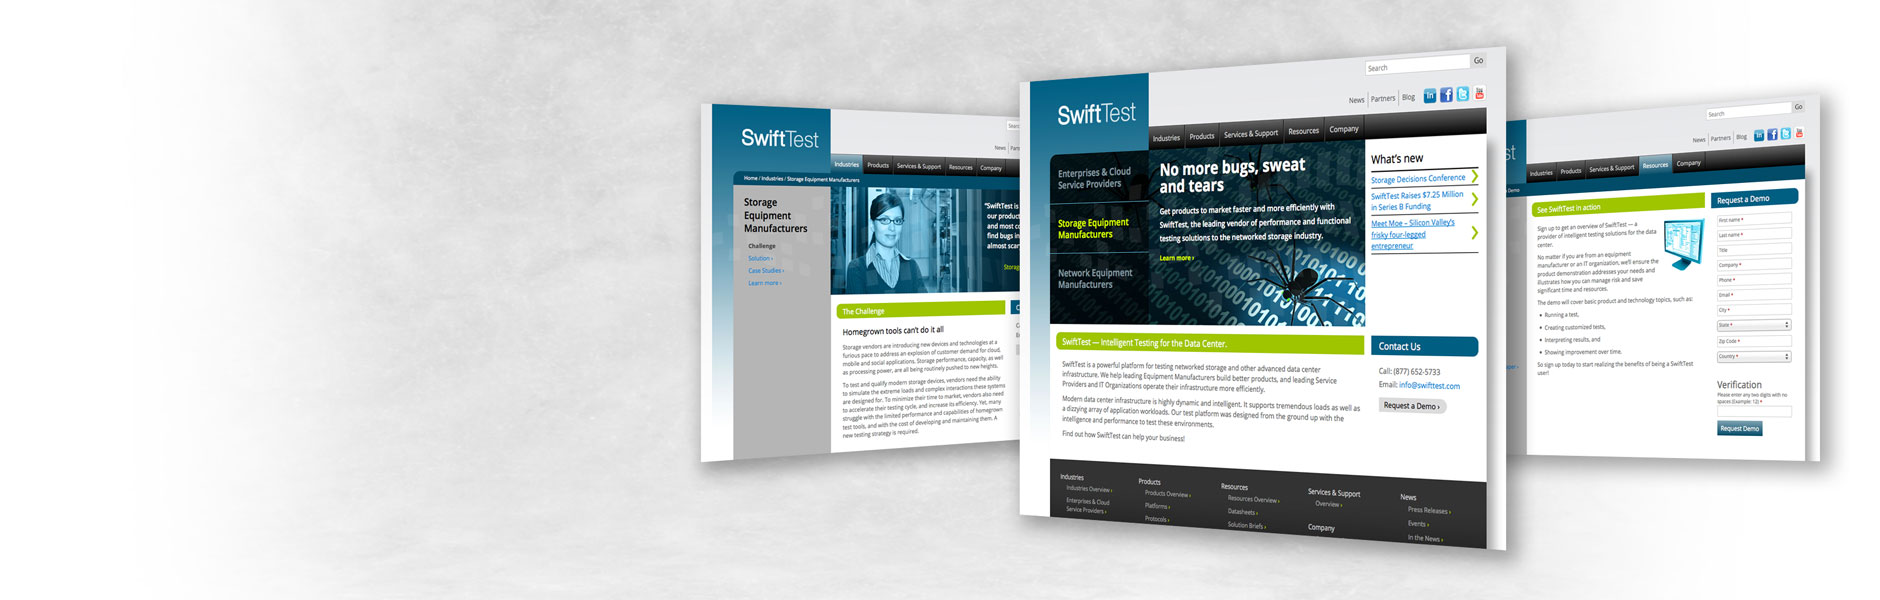 swifttest-website